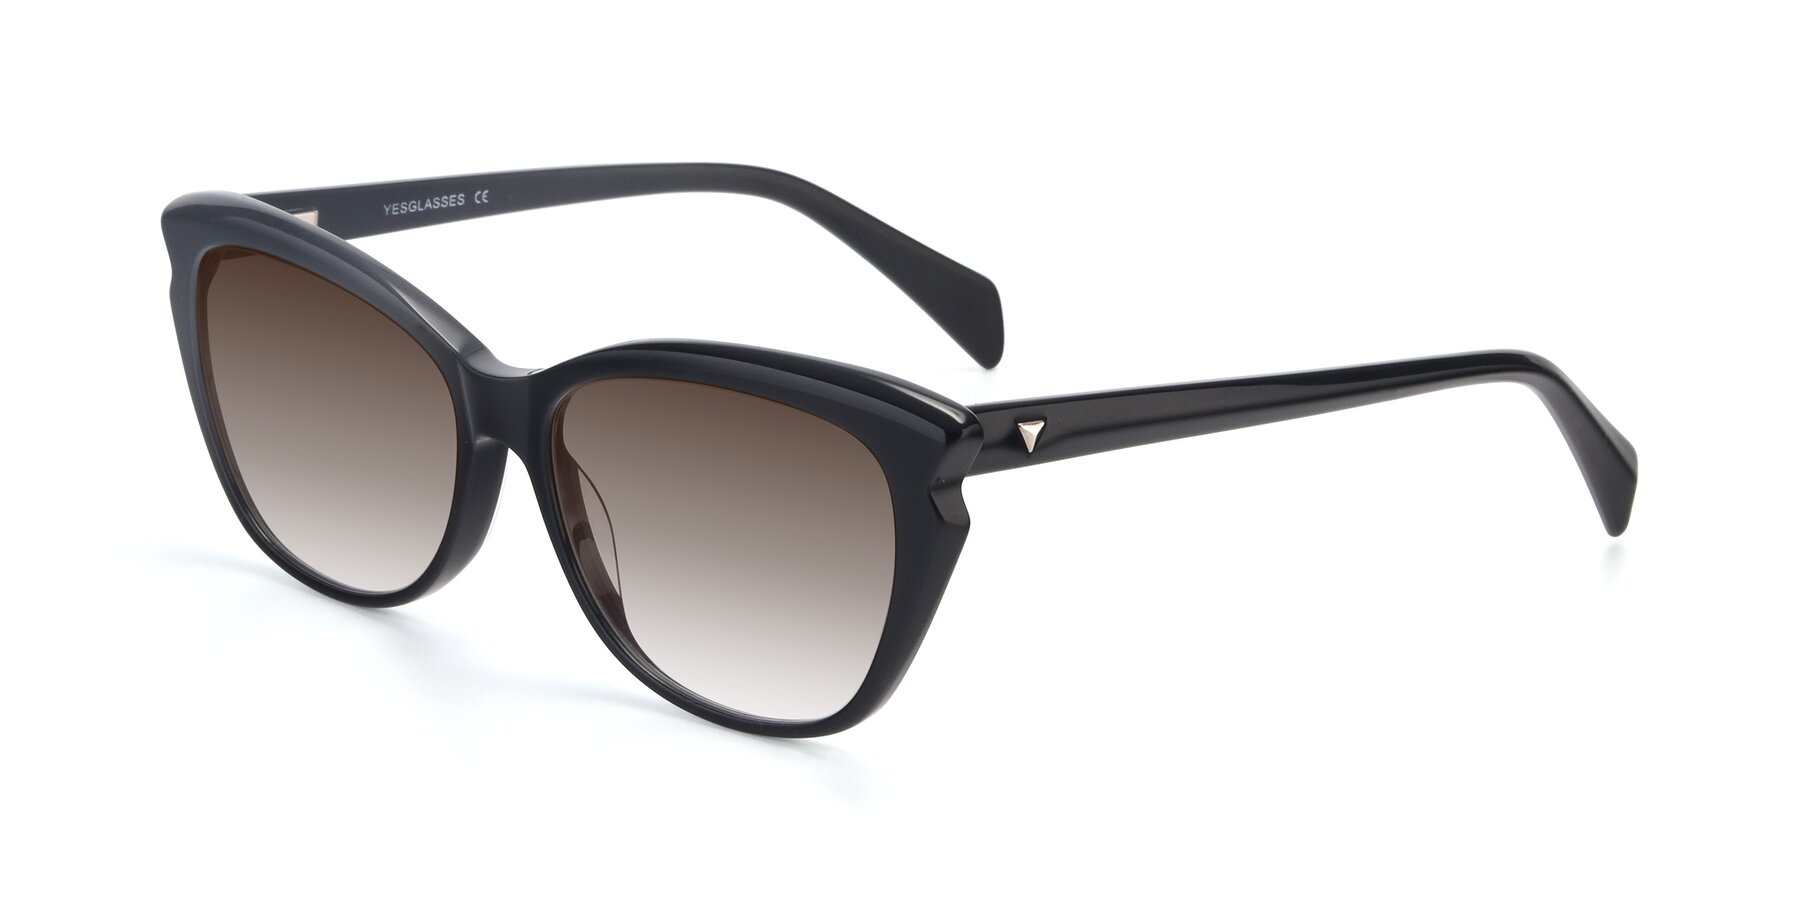 Angle of 17629 in Black with Brown Gradient Lenses